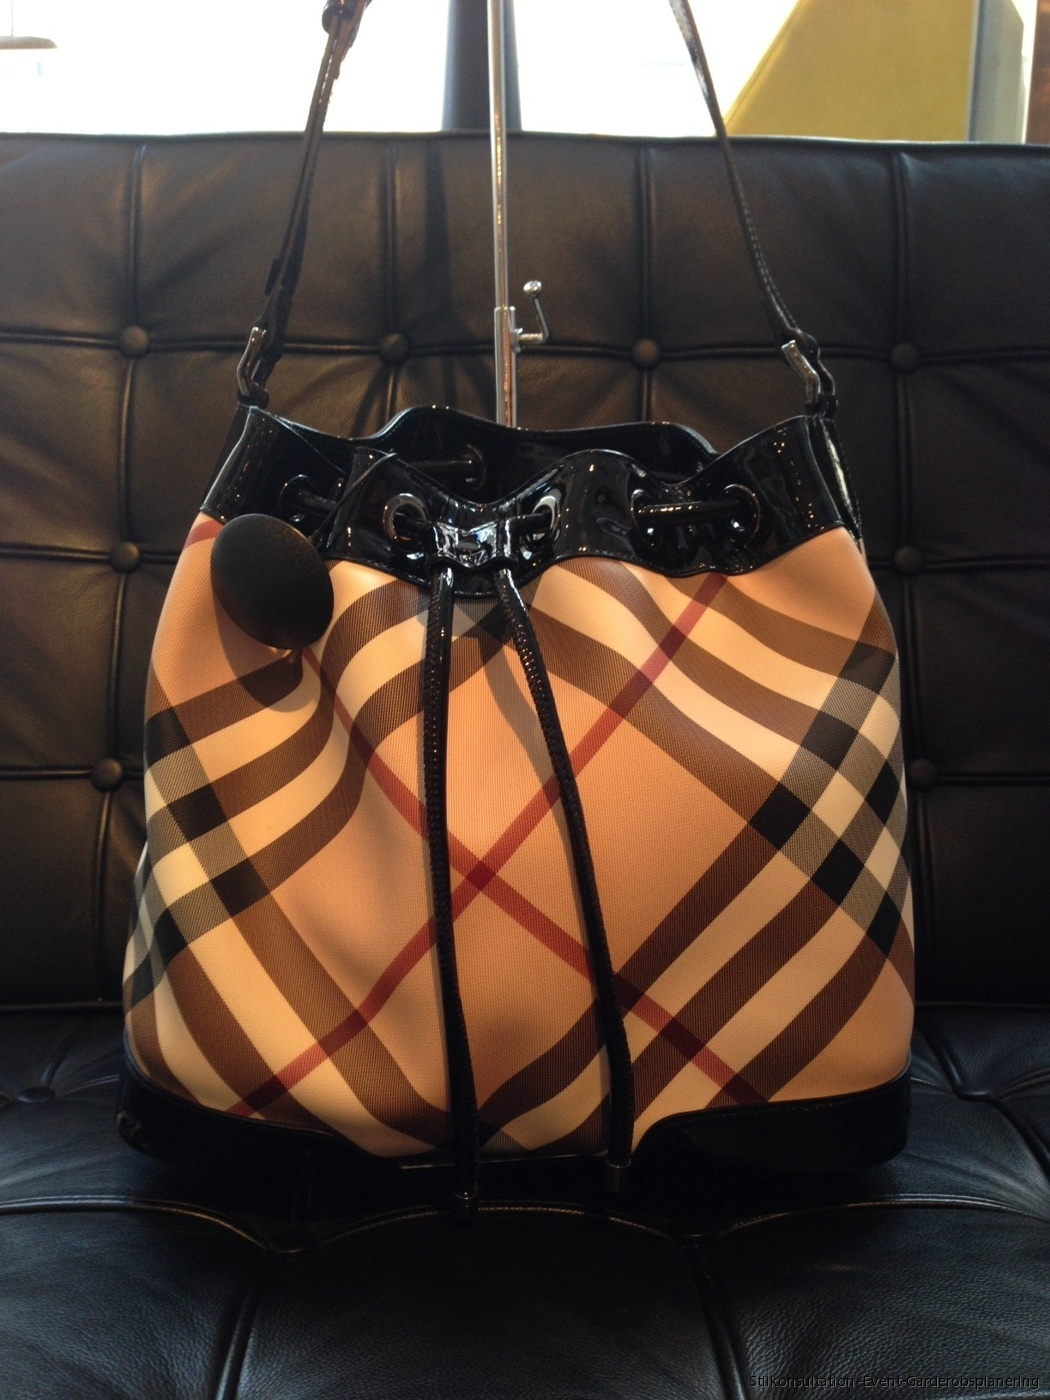 6acff0c66ac3 Gorgeous drawstring bucket bag with a long strap from Burberry is the perfect  go-to bag when you re out and about. The classic combo of black patent  leather ...